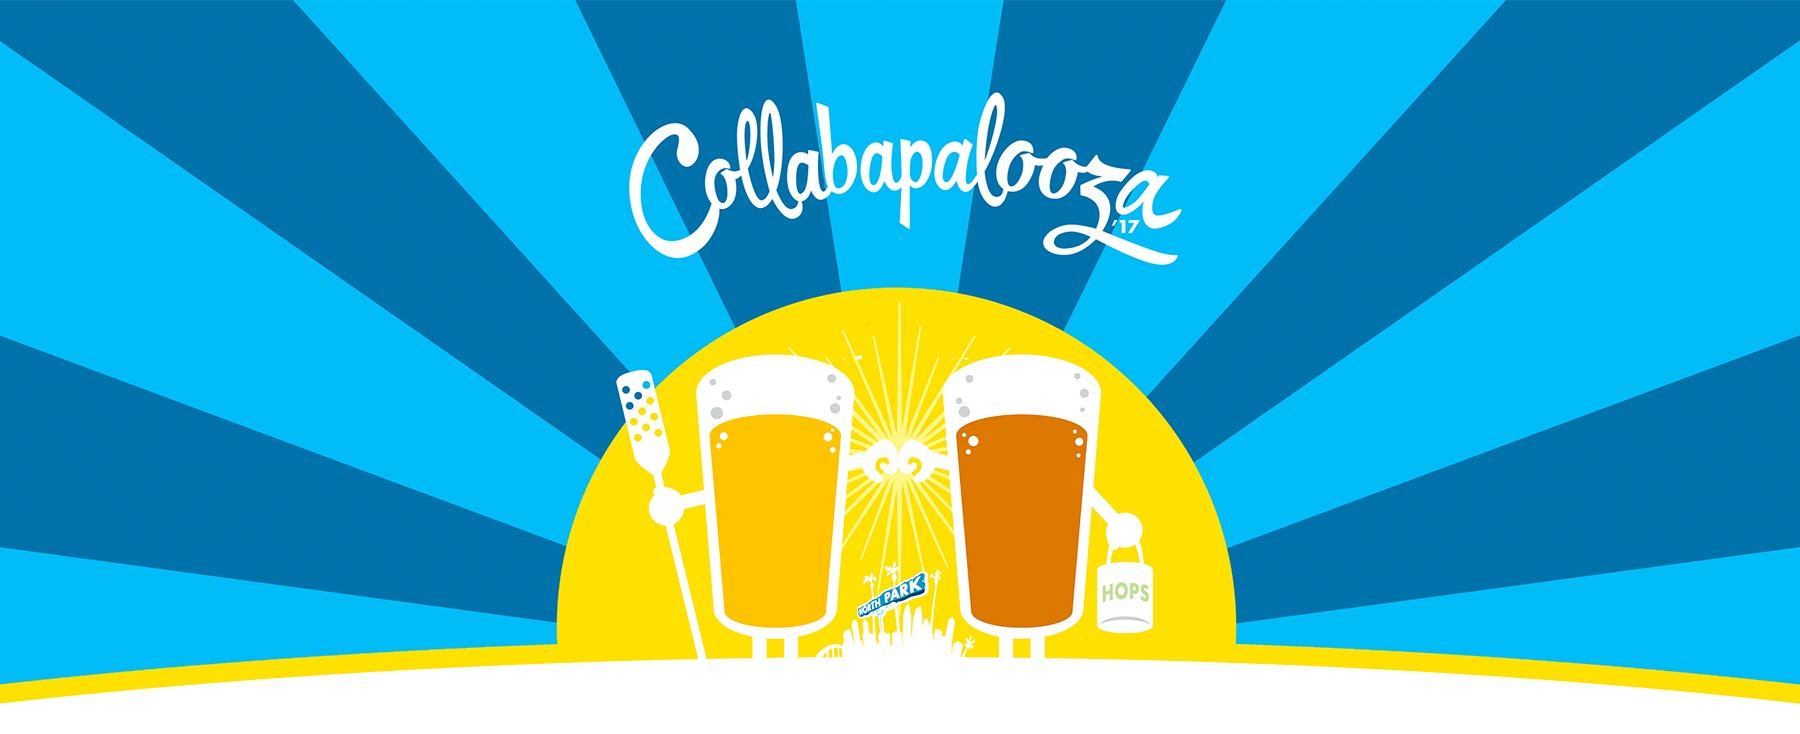 Collabapalooza - San Diego Beer Week